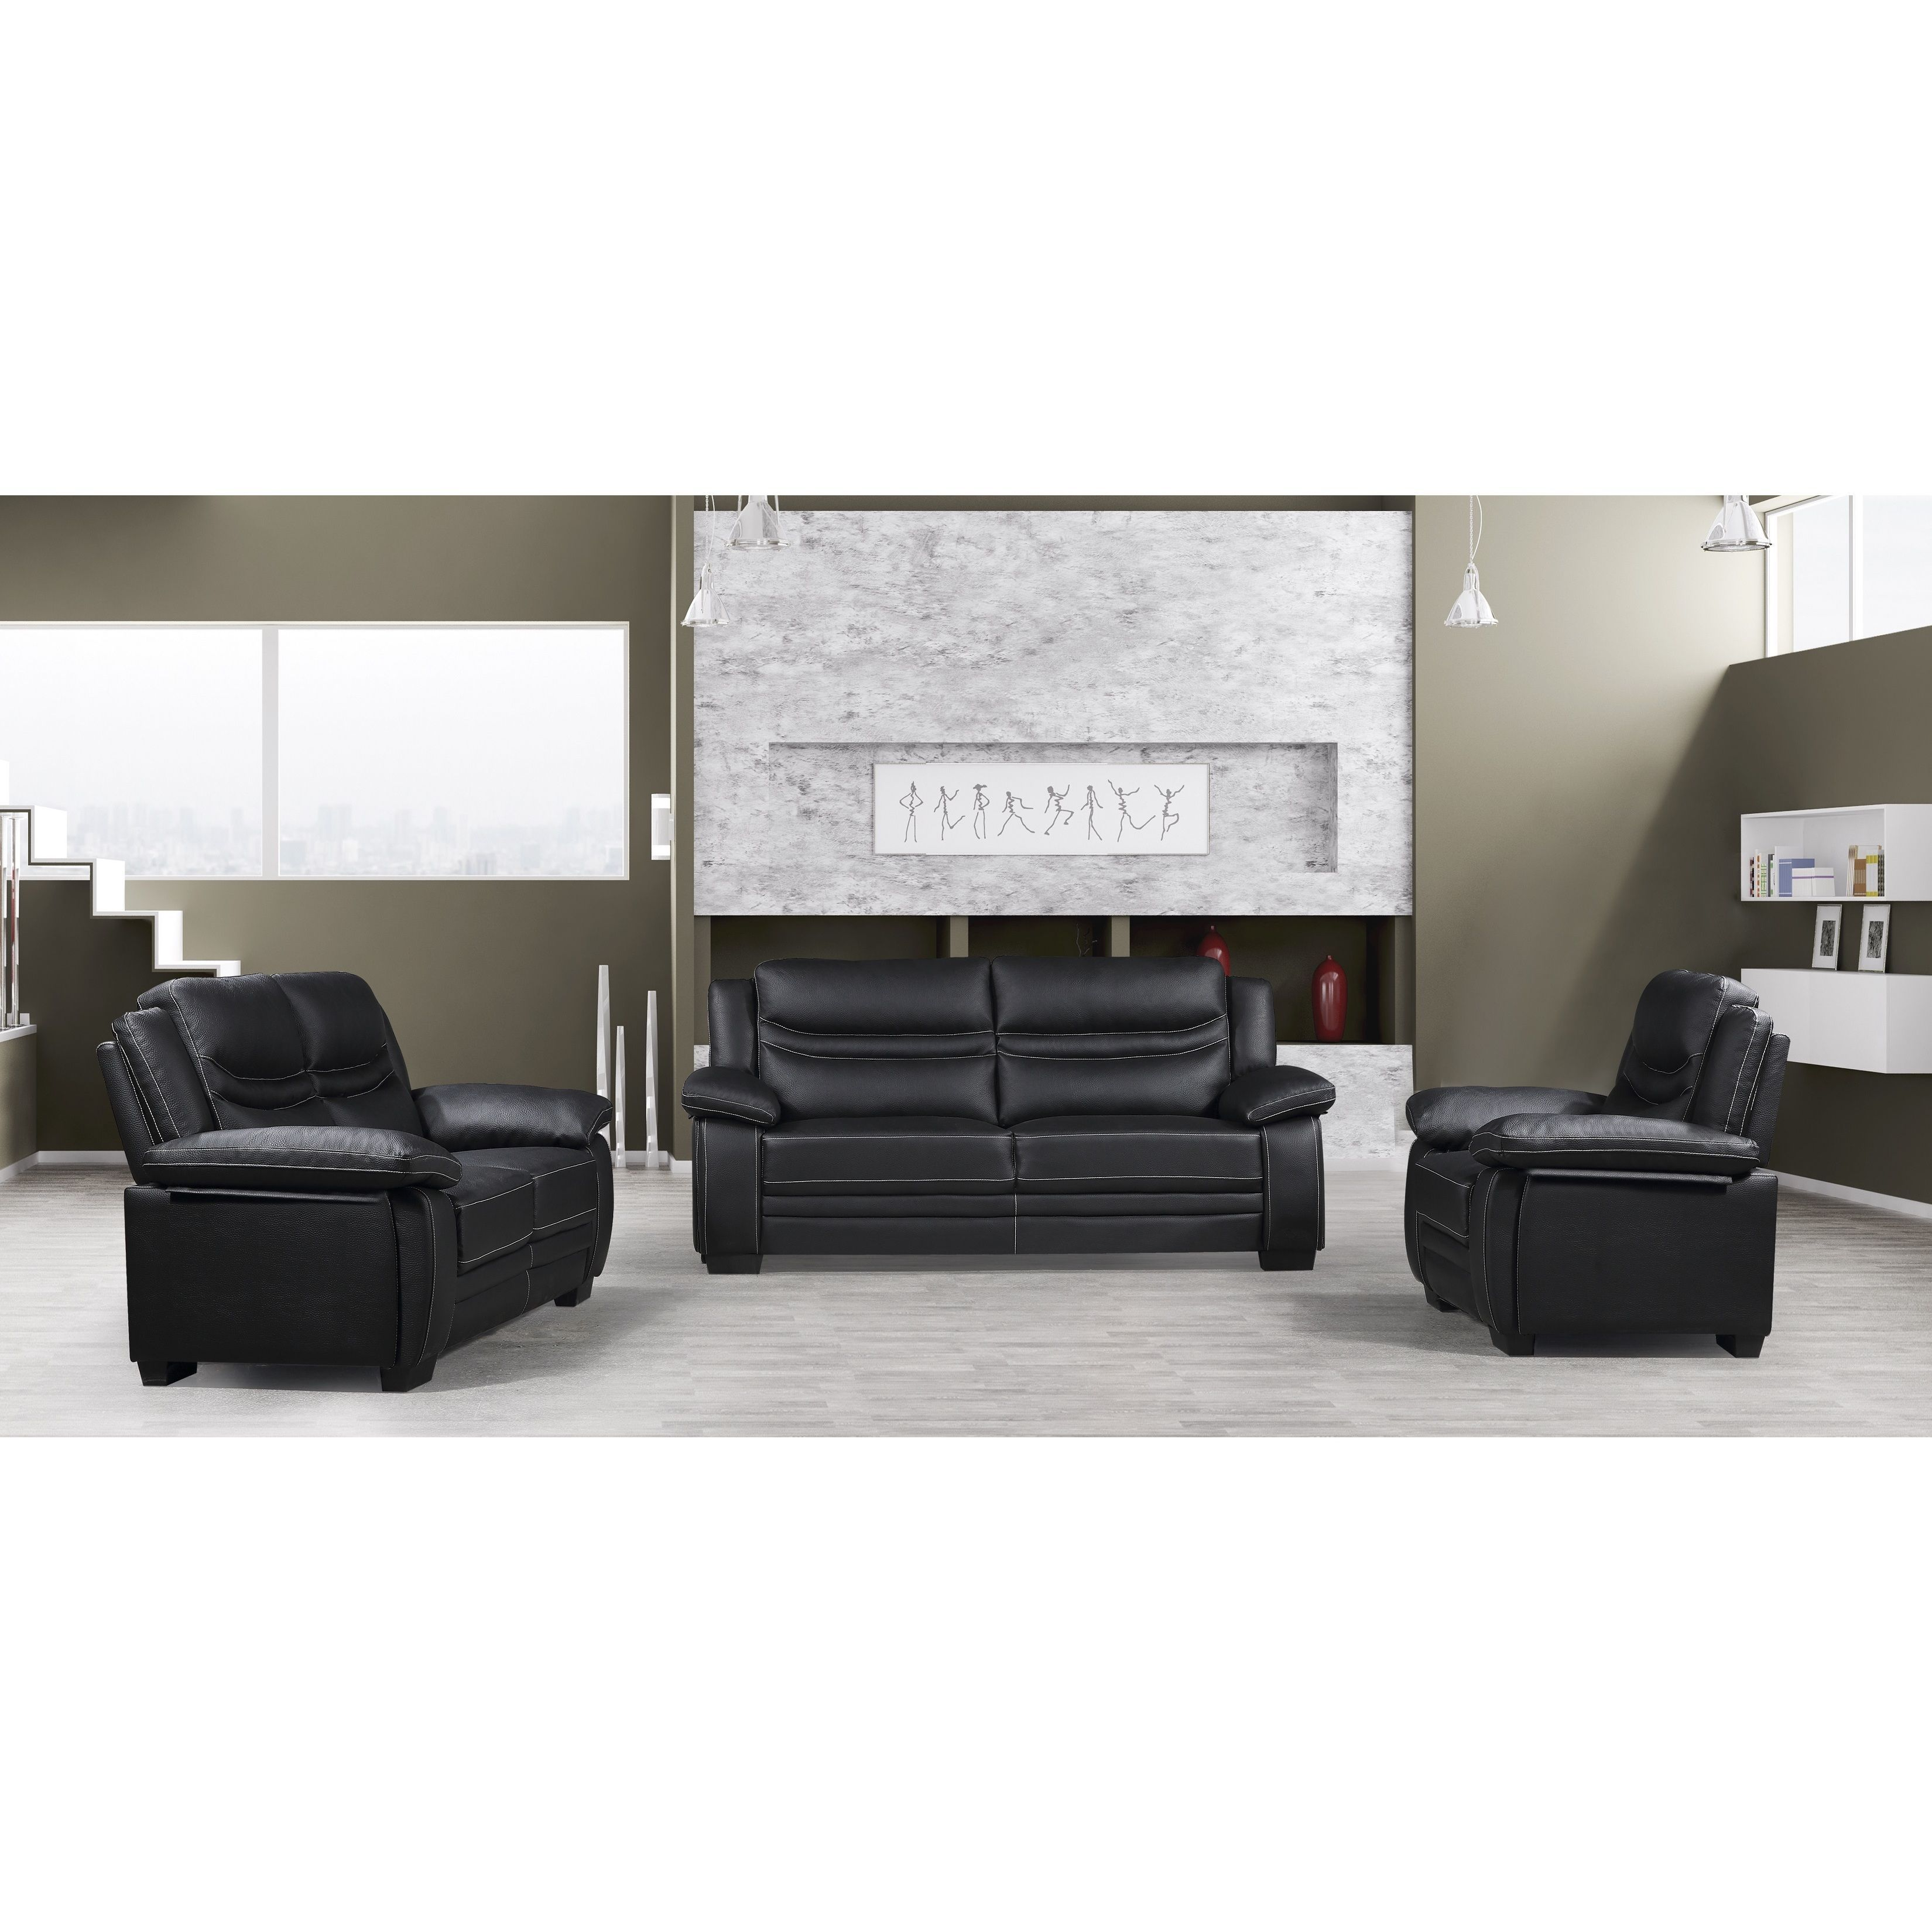 Create a modern atmosphere in your home with this Winnie furniture ...